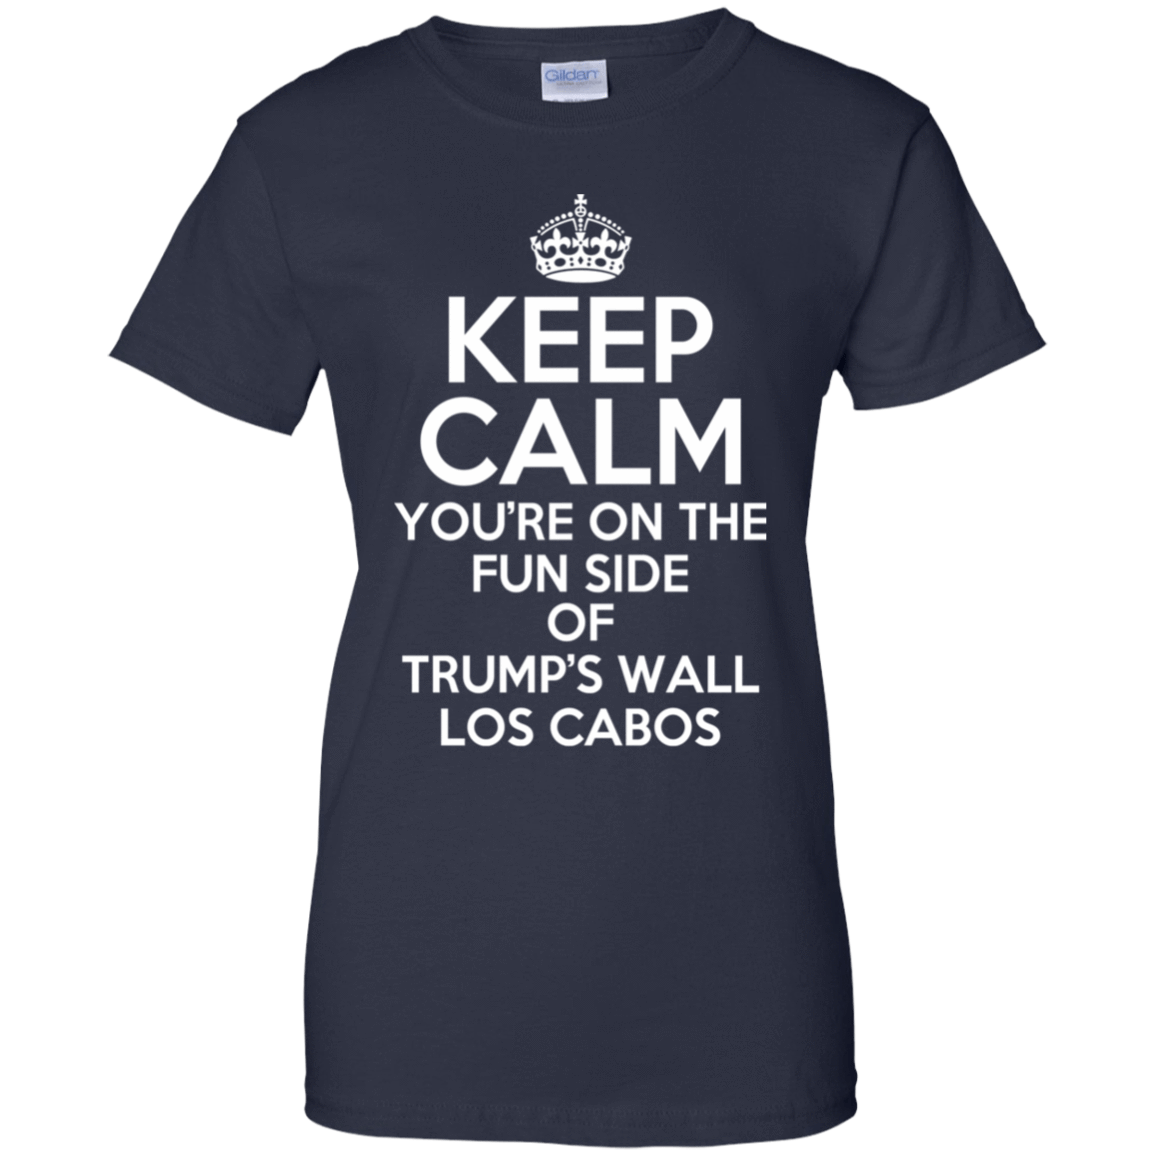 Keep Calm You're On The Fun Side Of Trump's Wall Los Cabos T-Shirts & Hoodies 939-9259-76151289-44765 - Tee Ript